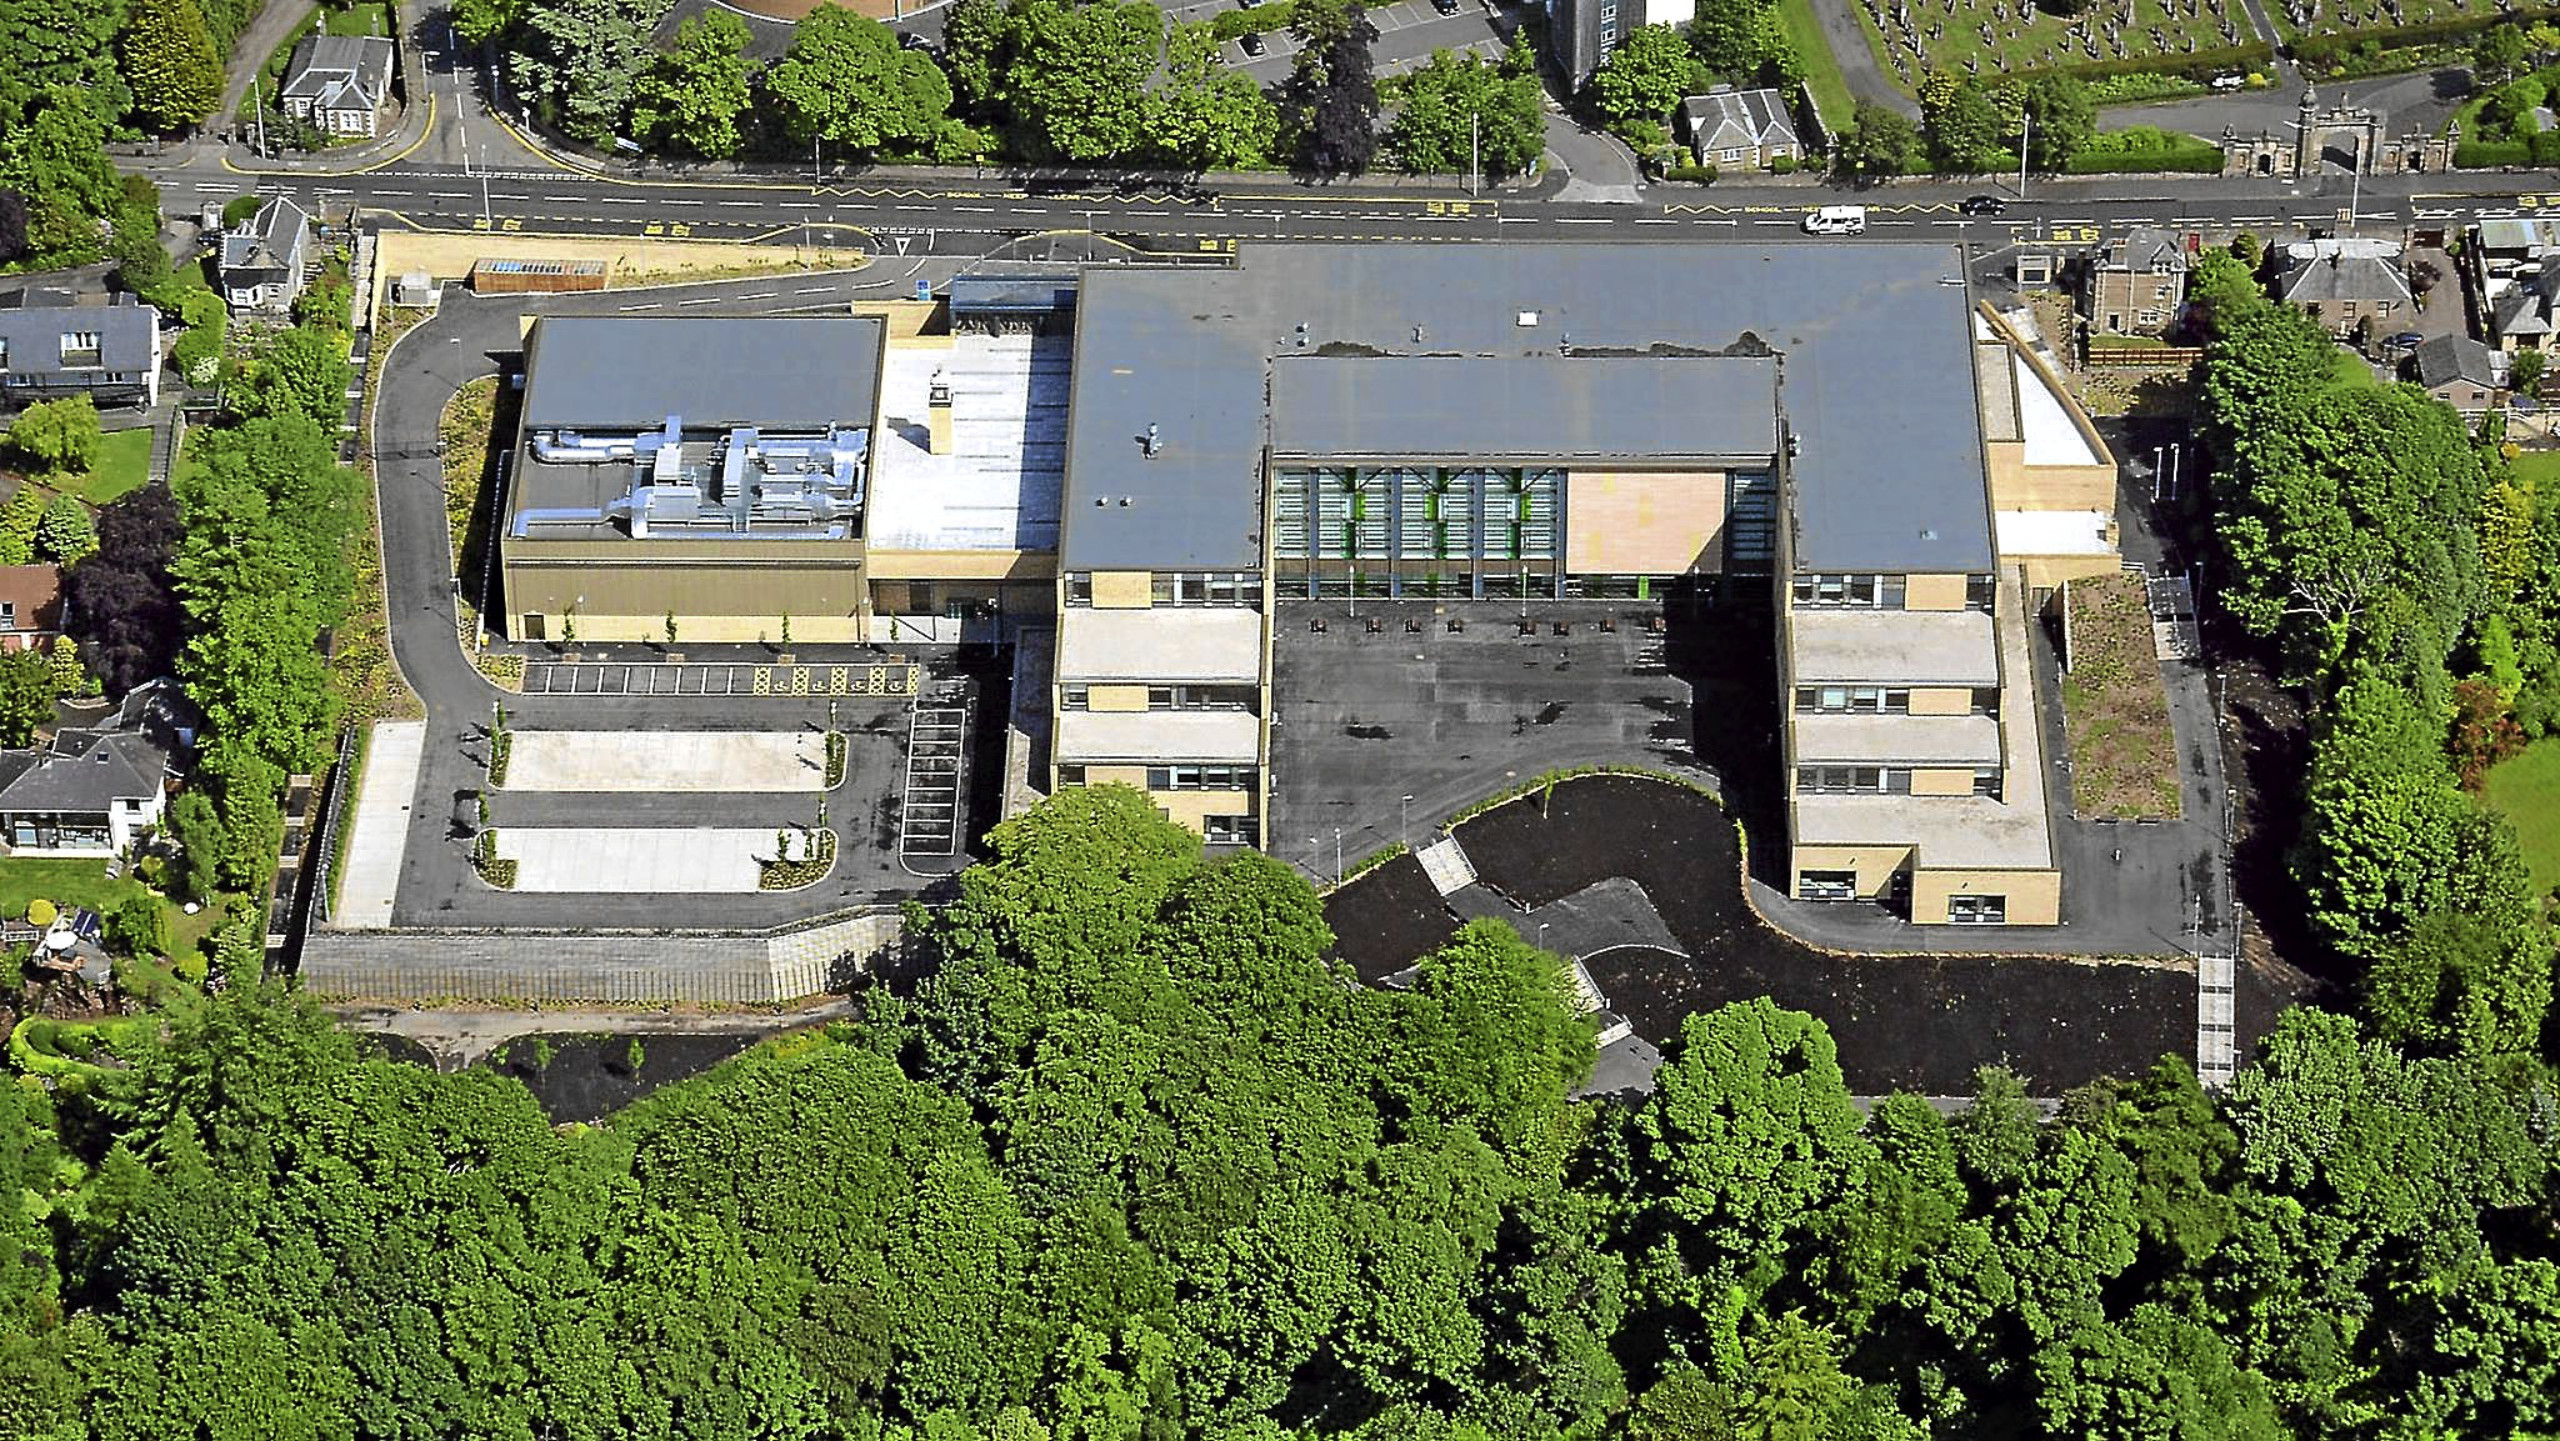 Photographer Jim Crosby captured the image of the new £31 million Harris Academy while flying his flexwing microlight.